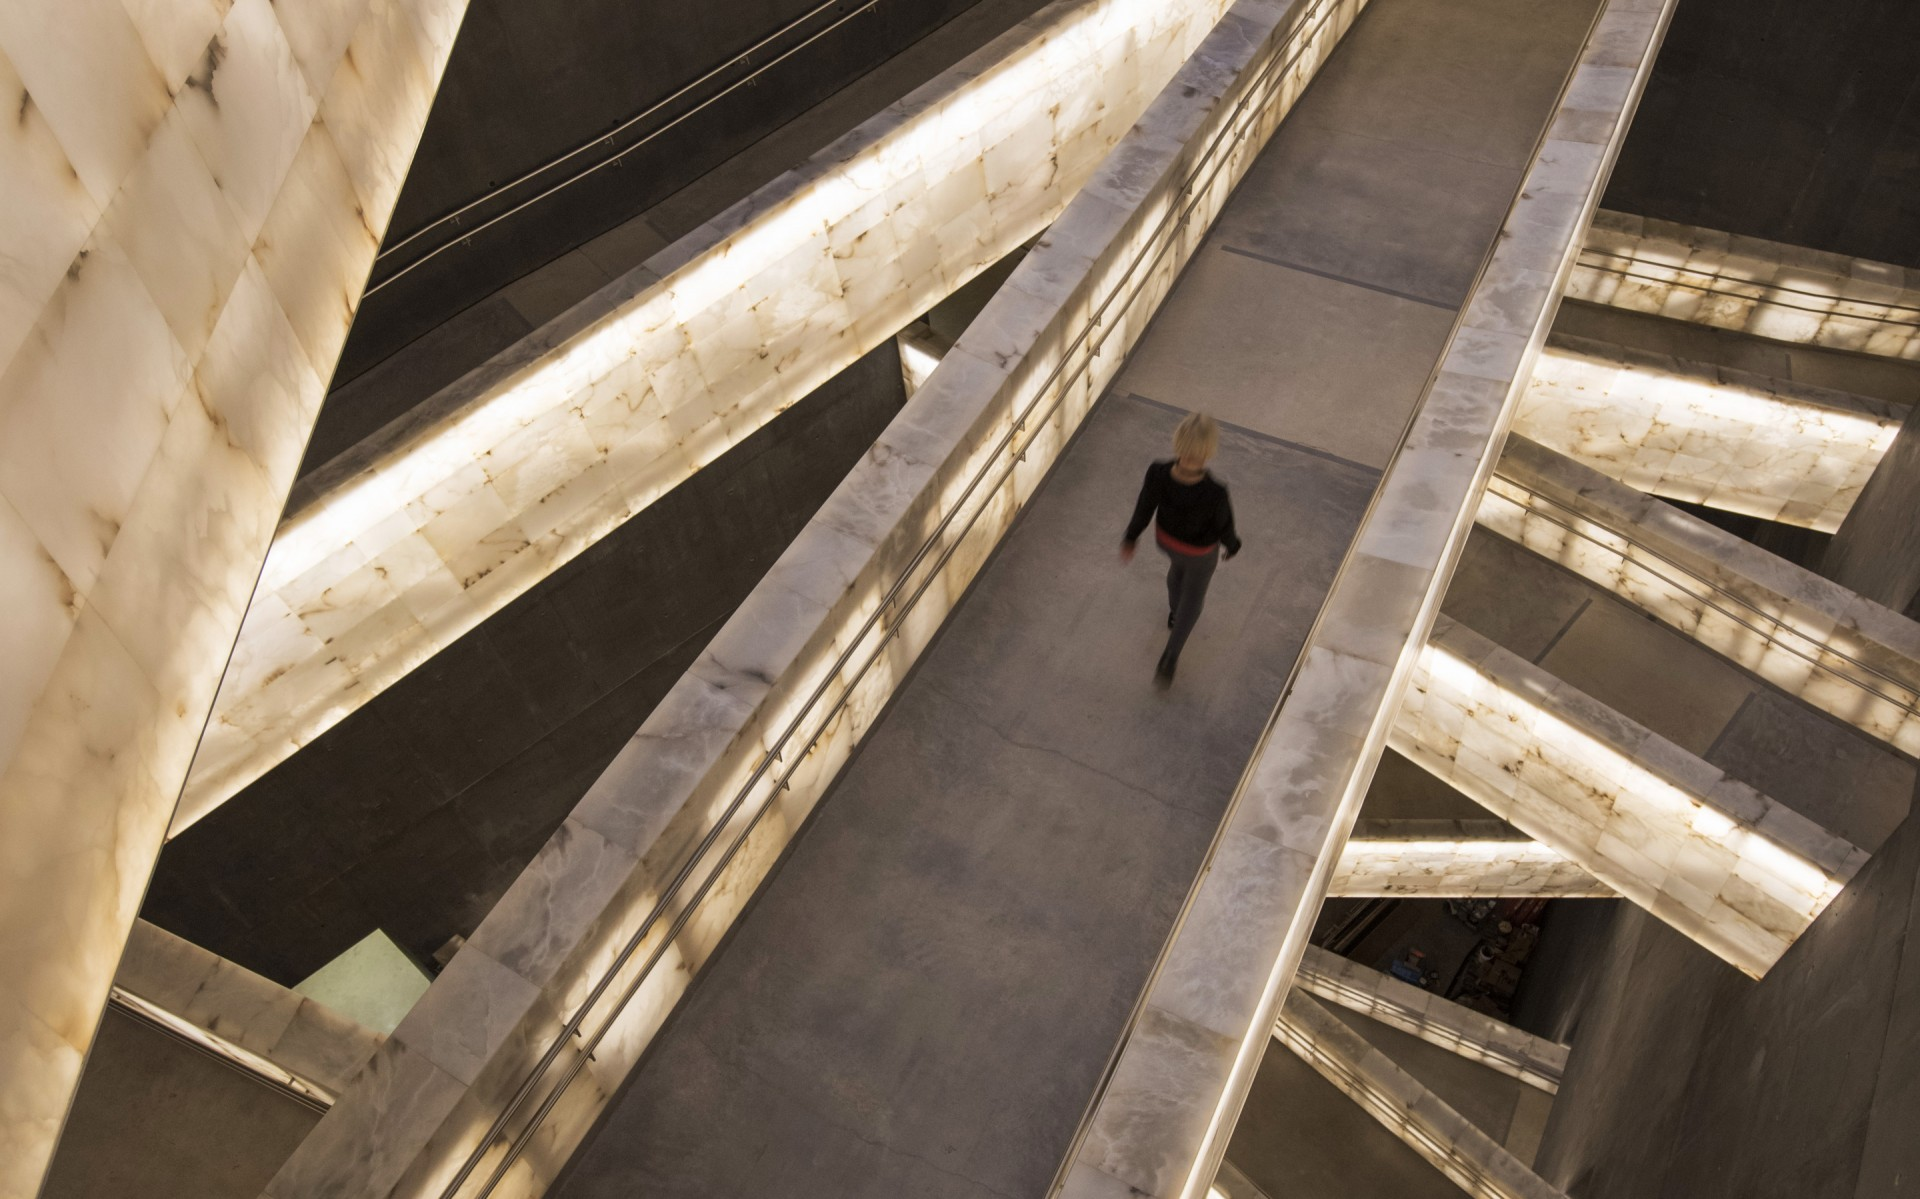 The Canadian Museum for Human Rights in Winnipeg, Manitoba opened its doors in September 2014.